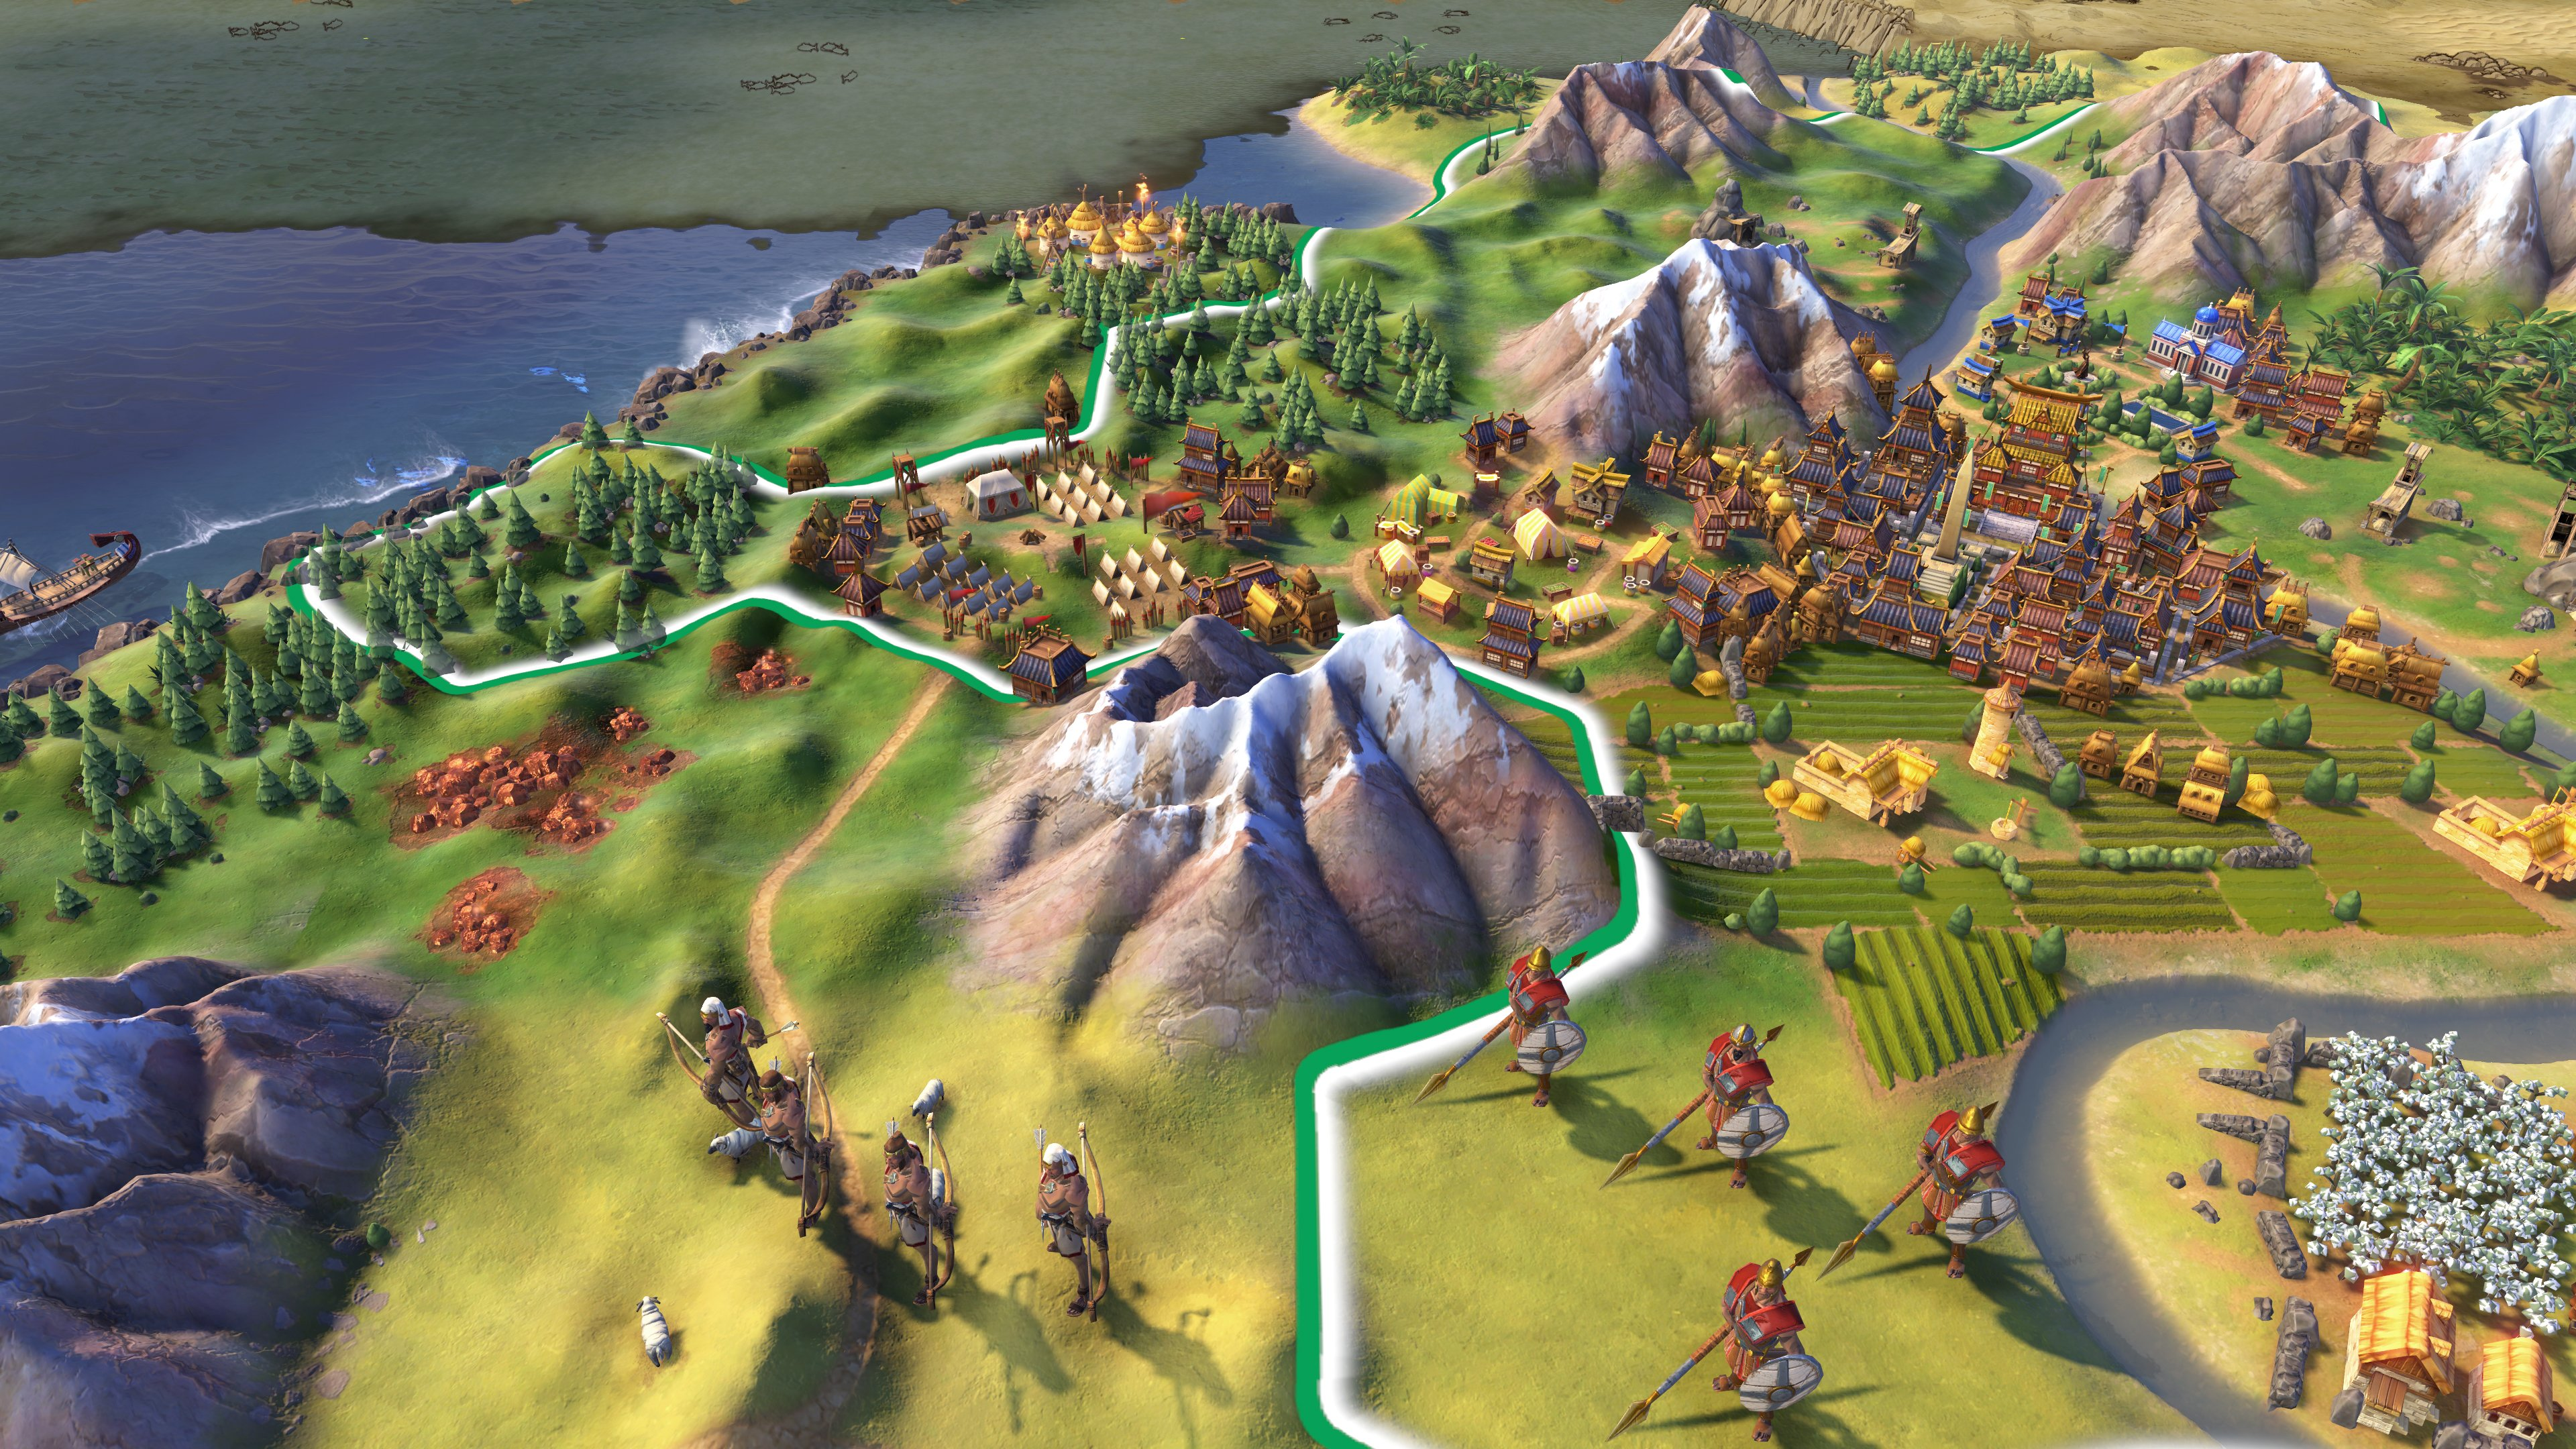 Civilization VI is hitting PS4 and Xbox One this week, and it's still pretty good screenshot